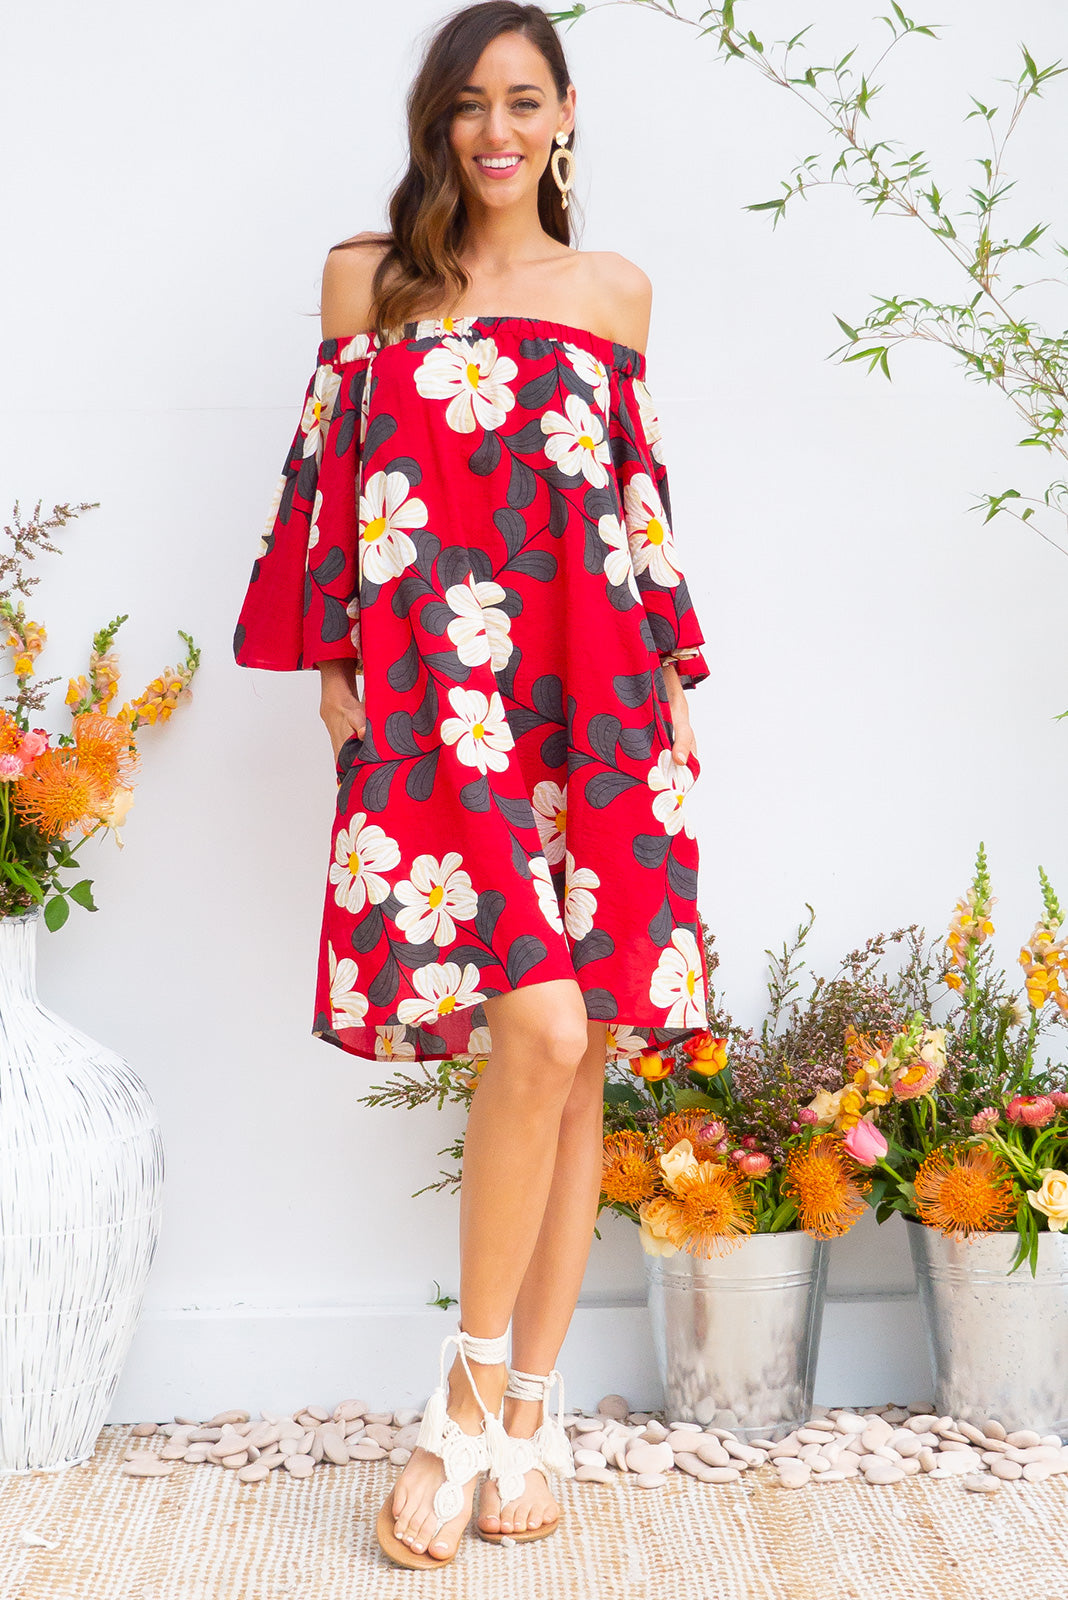 Mai Tai Bird Intense Red Off the shoulder dress in bright red graphic daisy print on woven rayon cotton blend with pockets